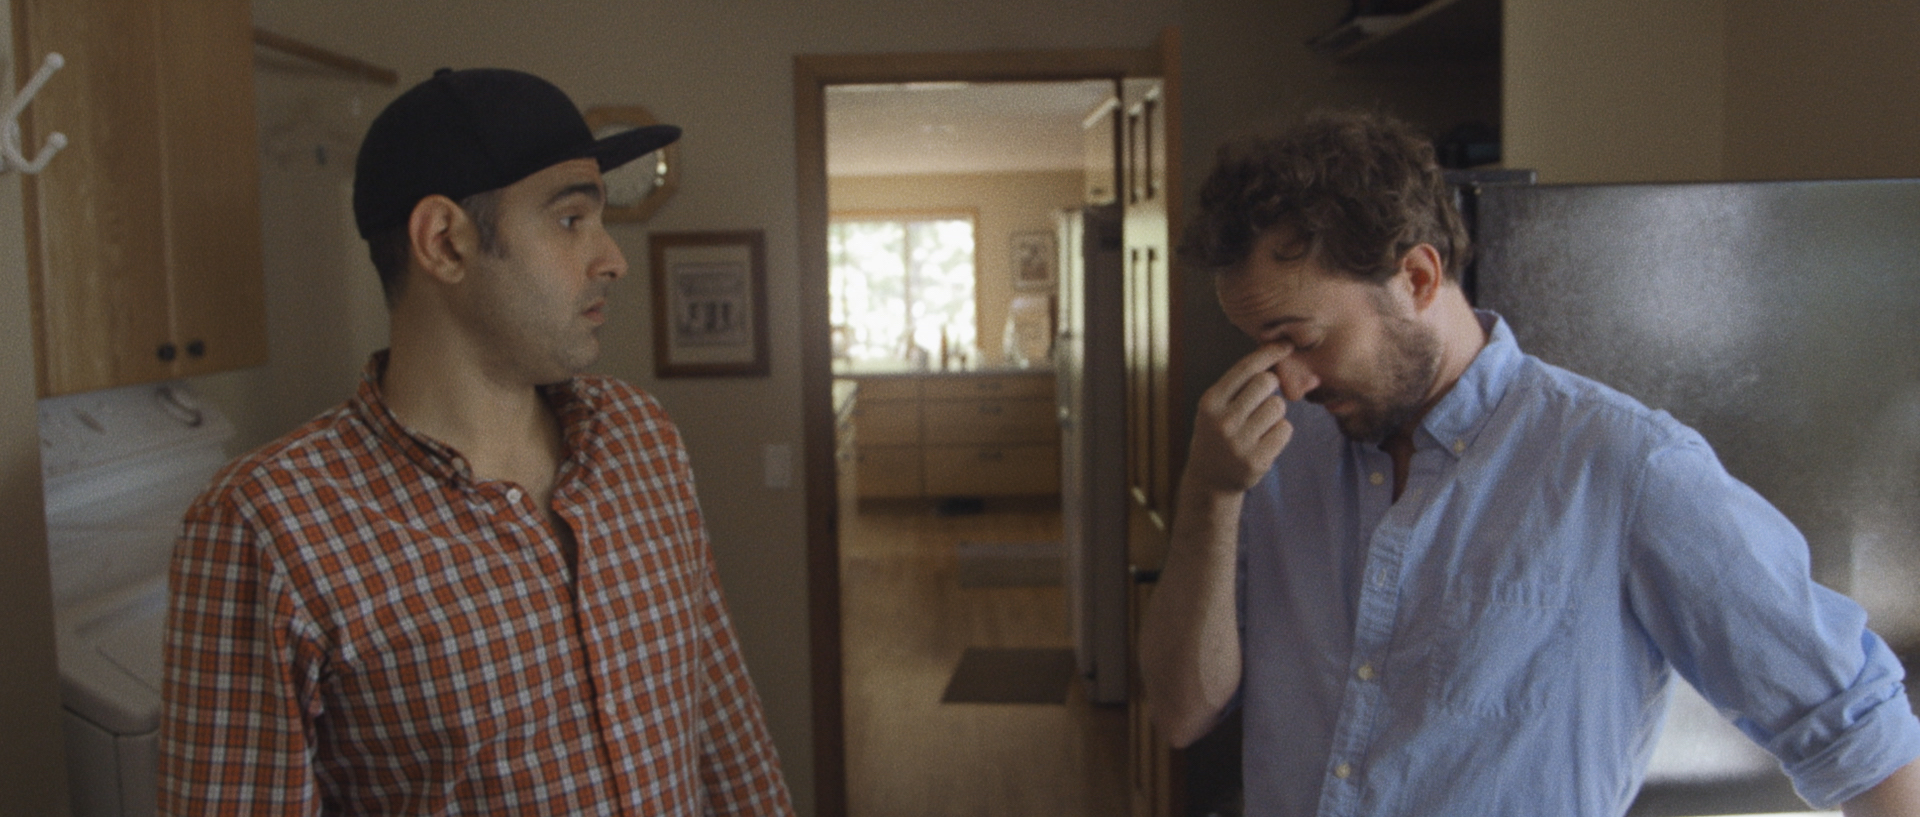 L to R: Robert D'Esposito as Anthony and Jon Titterington as Tim. Image courtesy of Hunter Way Pictures.